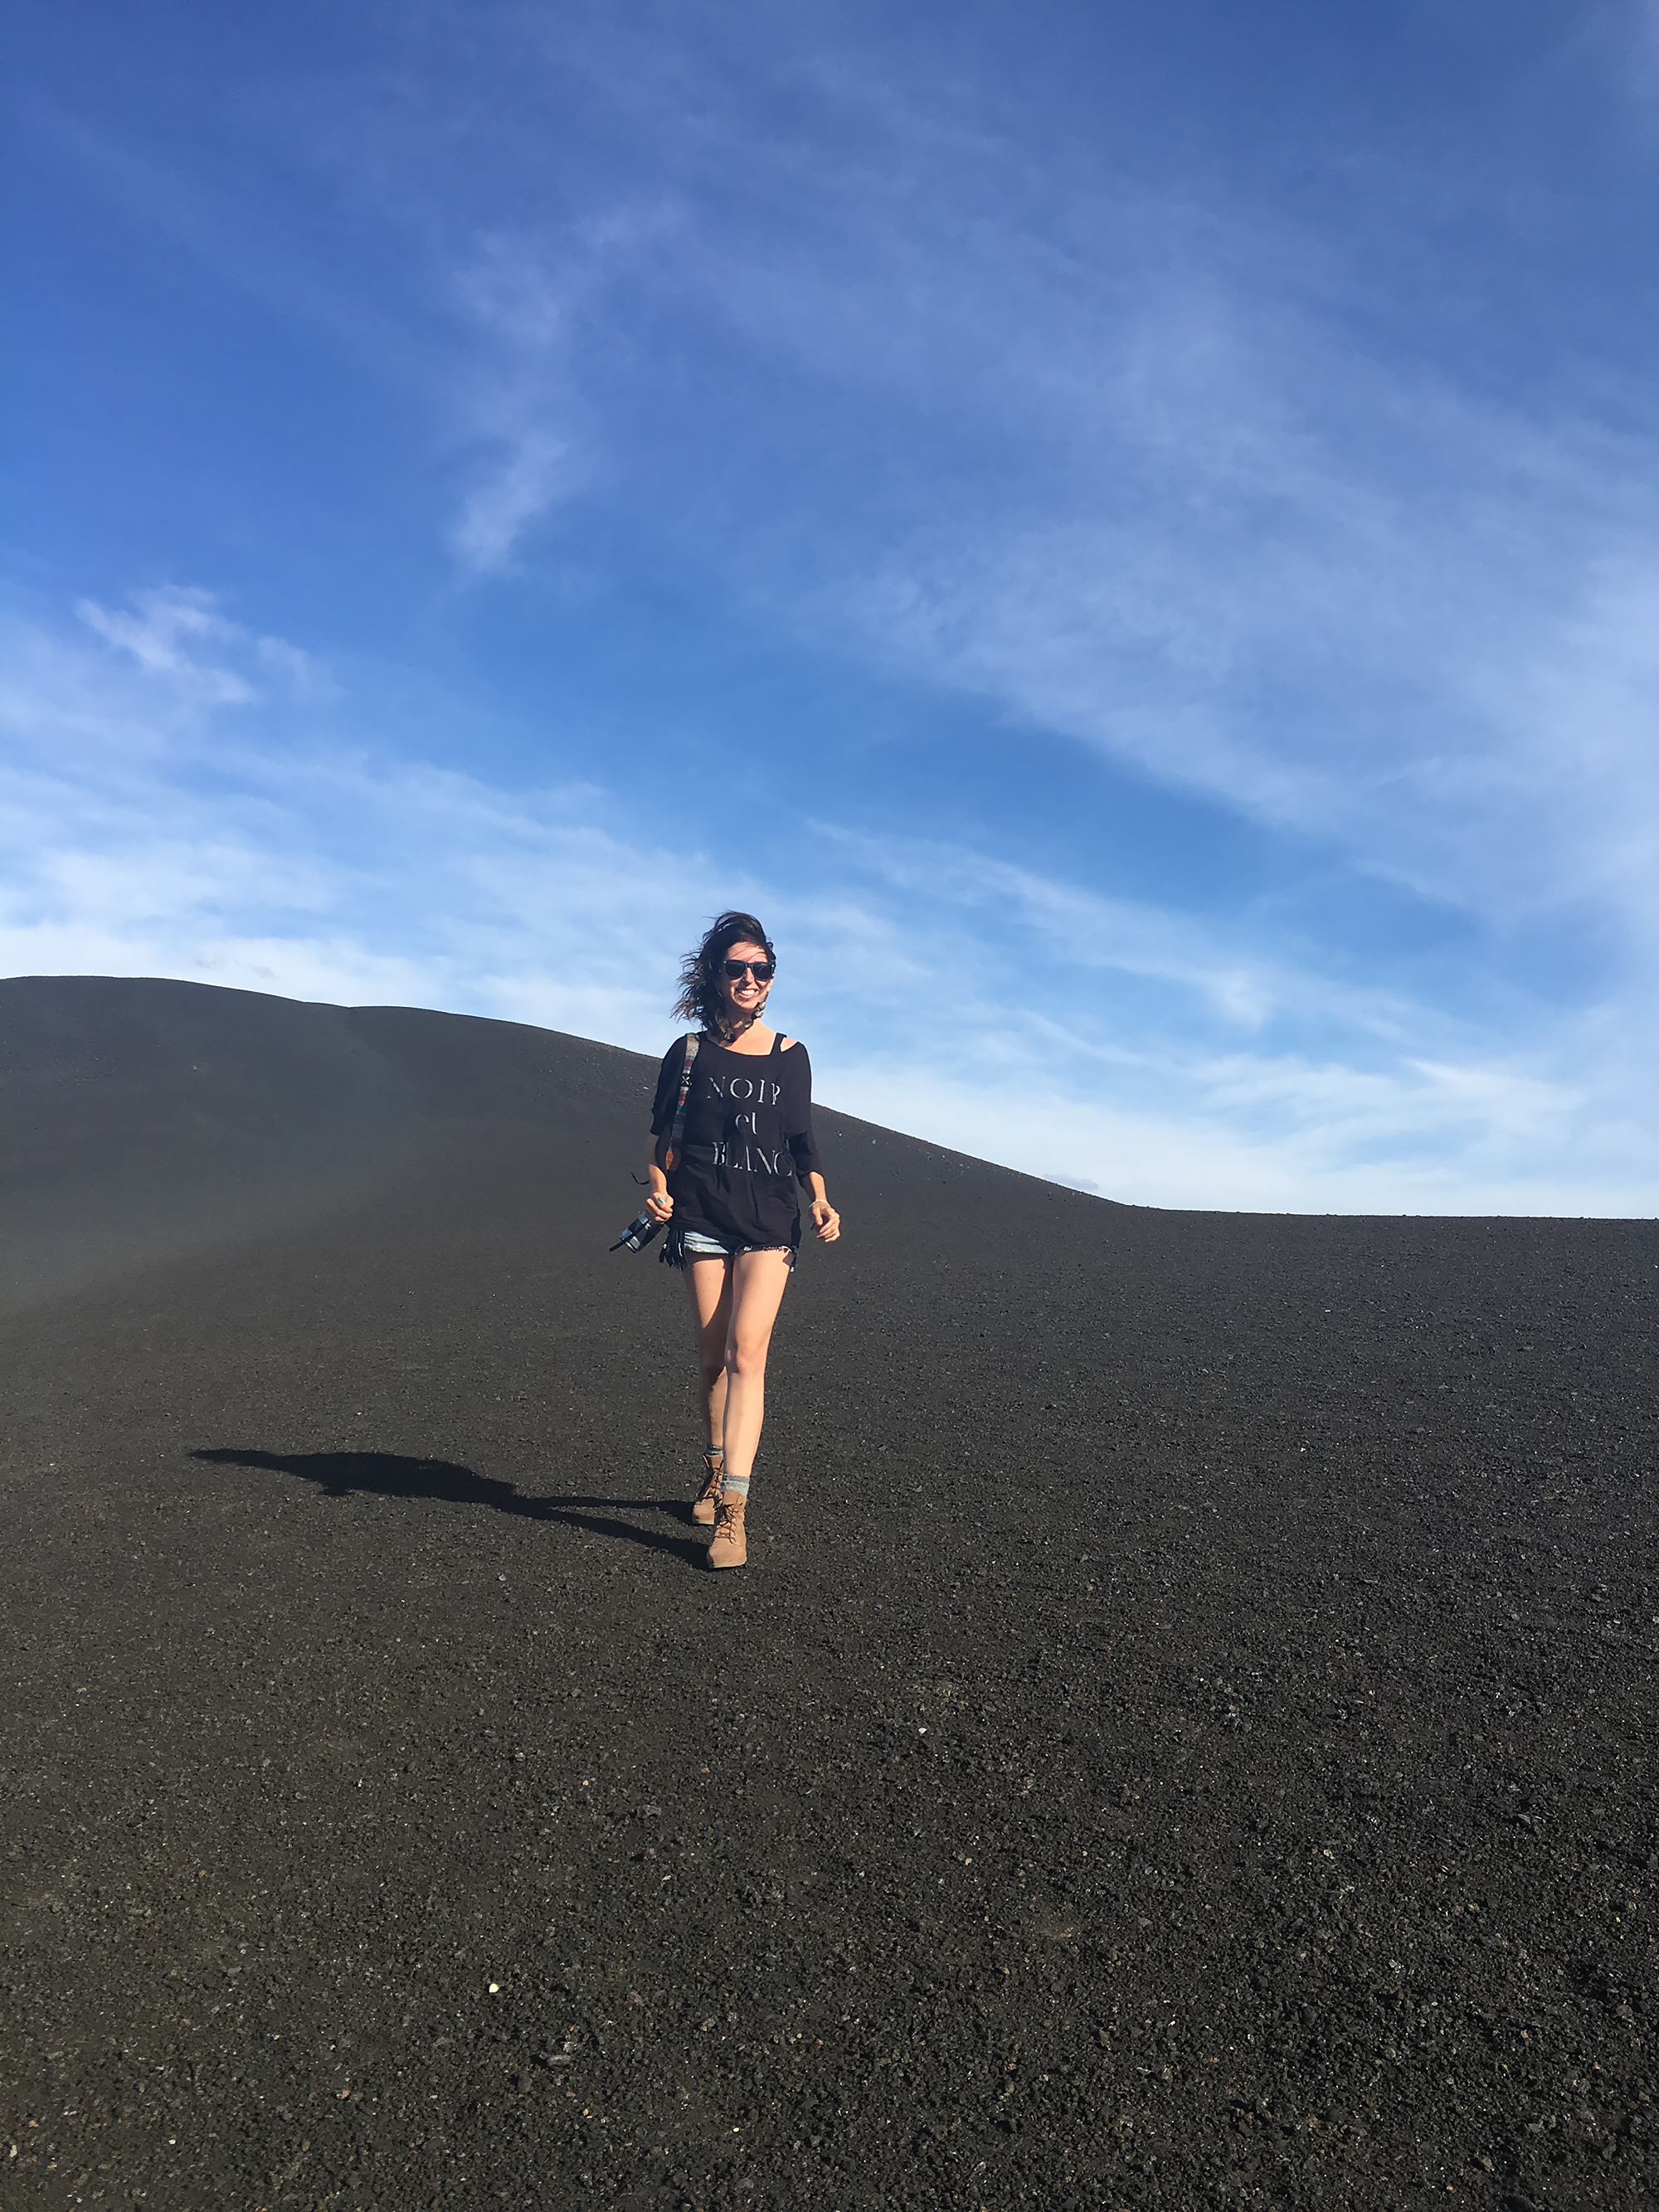 Exploring Craters of the Moon national monument, Idaho